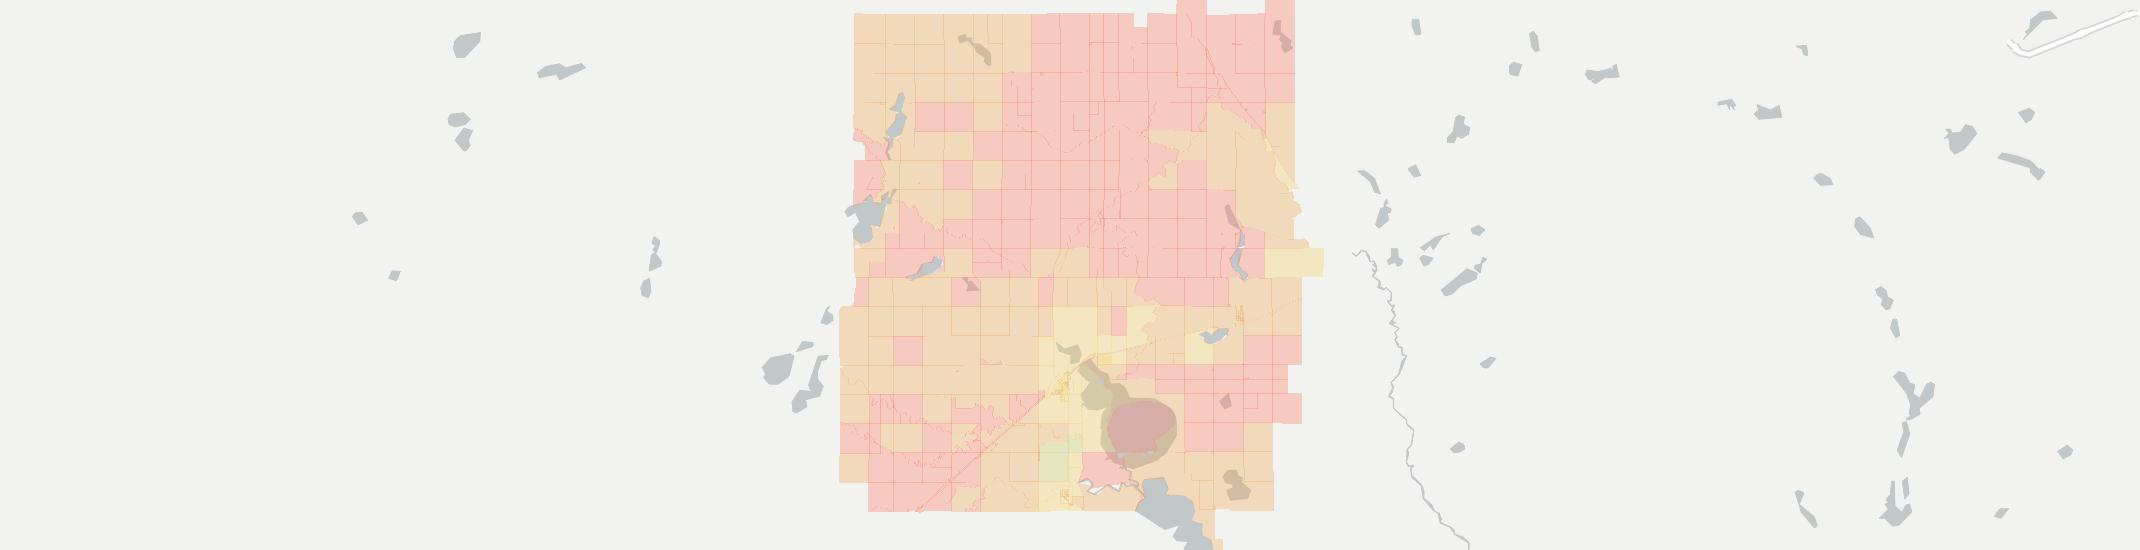 Heron Lake Internet Competition Map. Click for interactive map.